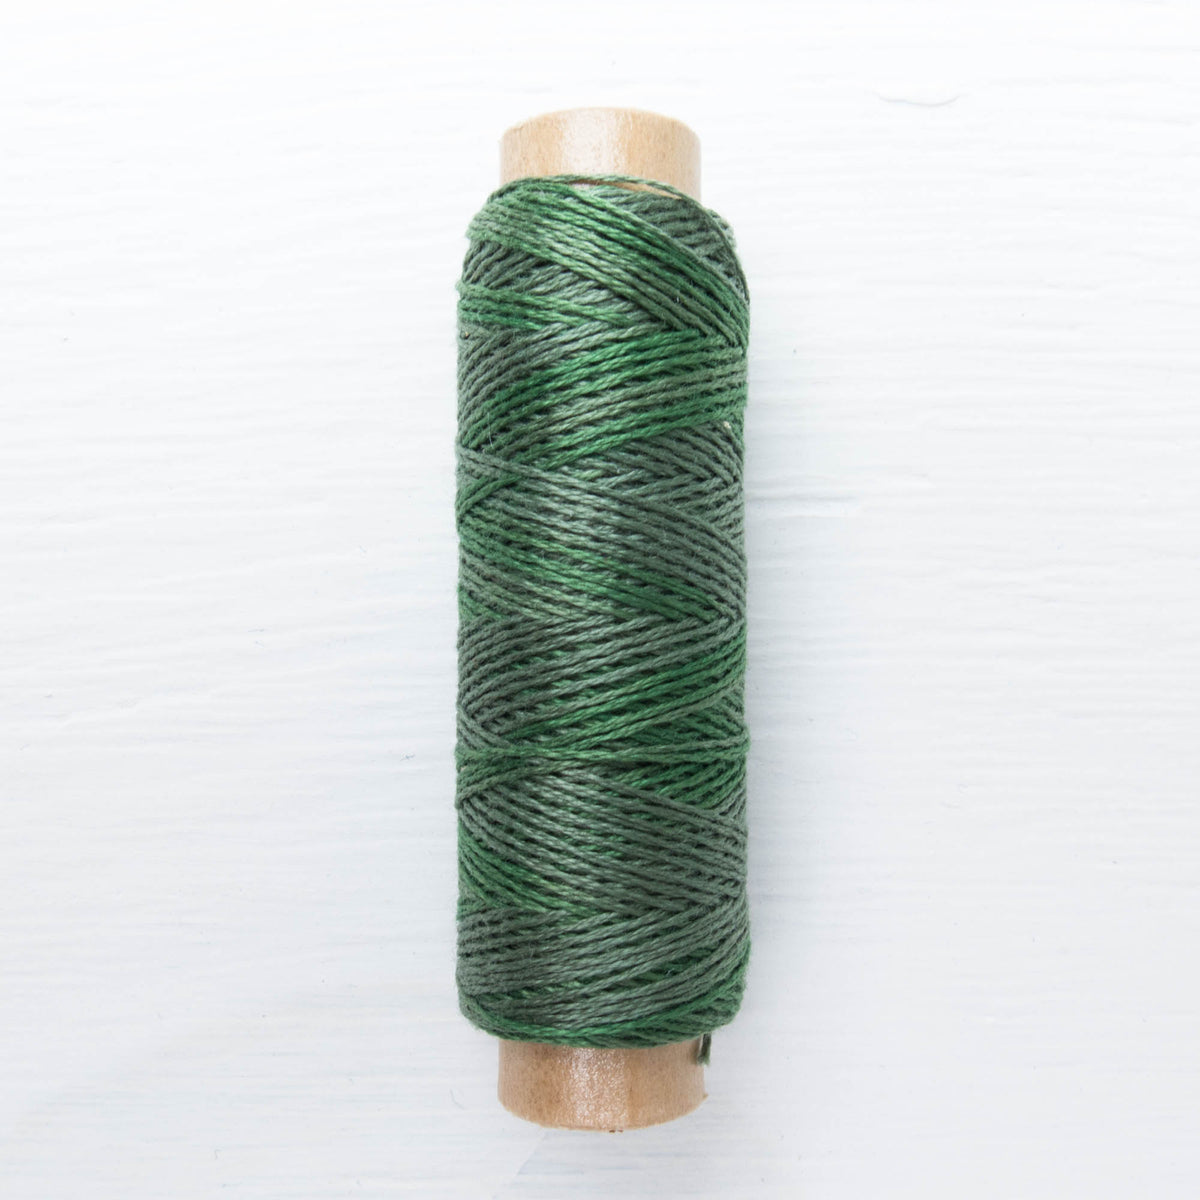 Weeks Dye Works 2 Strand Floss - Forest Collection Floss - Snuggly Monkey